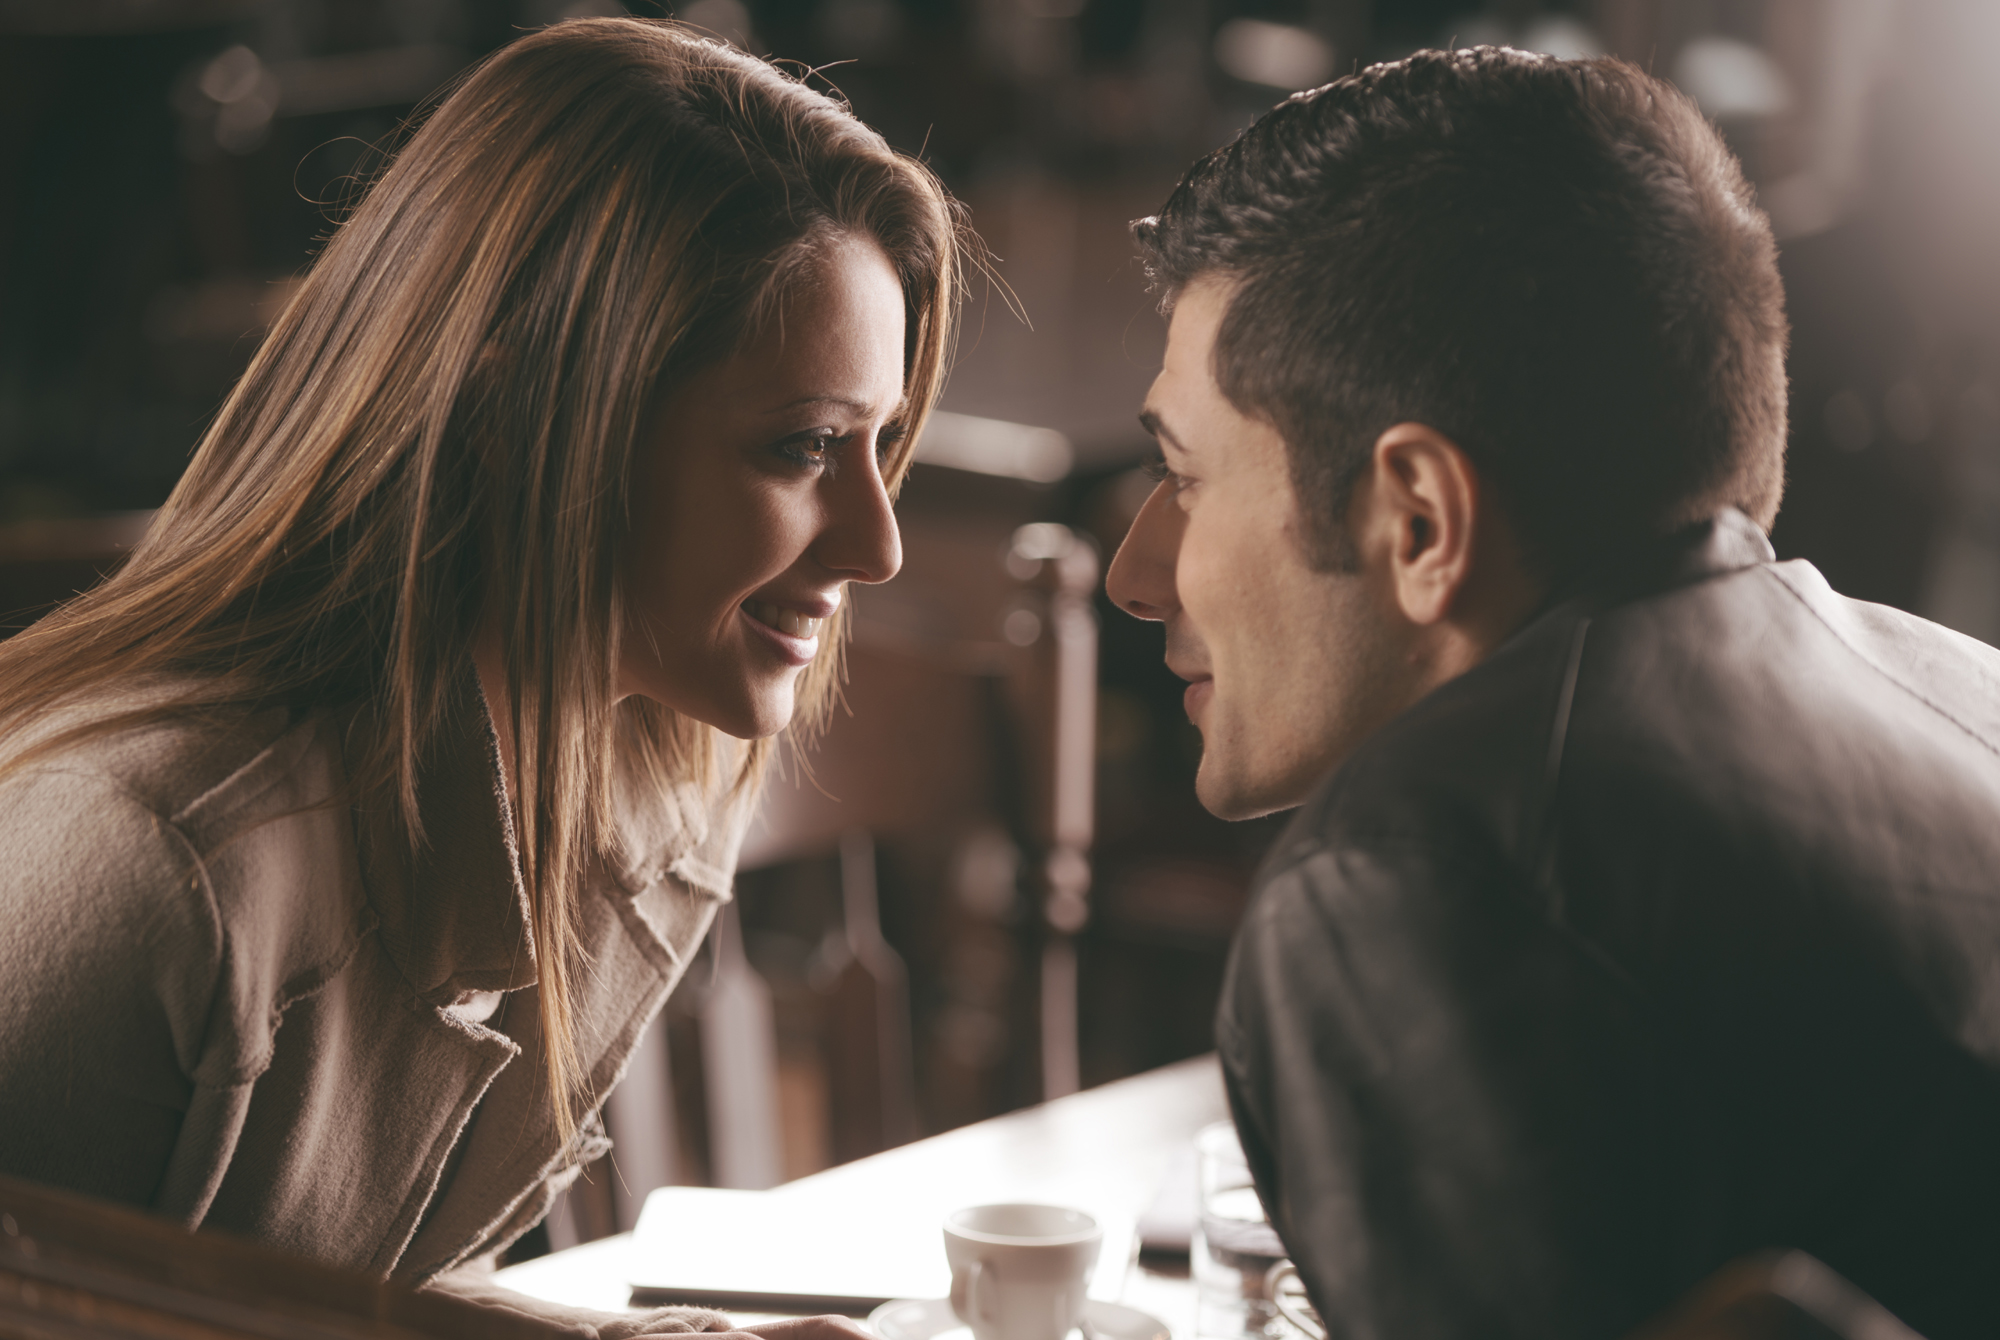 Can a married man flirt with a single woman?